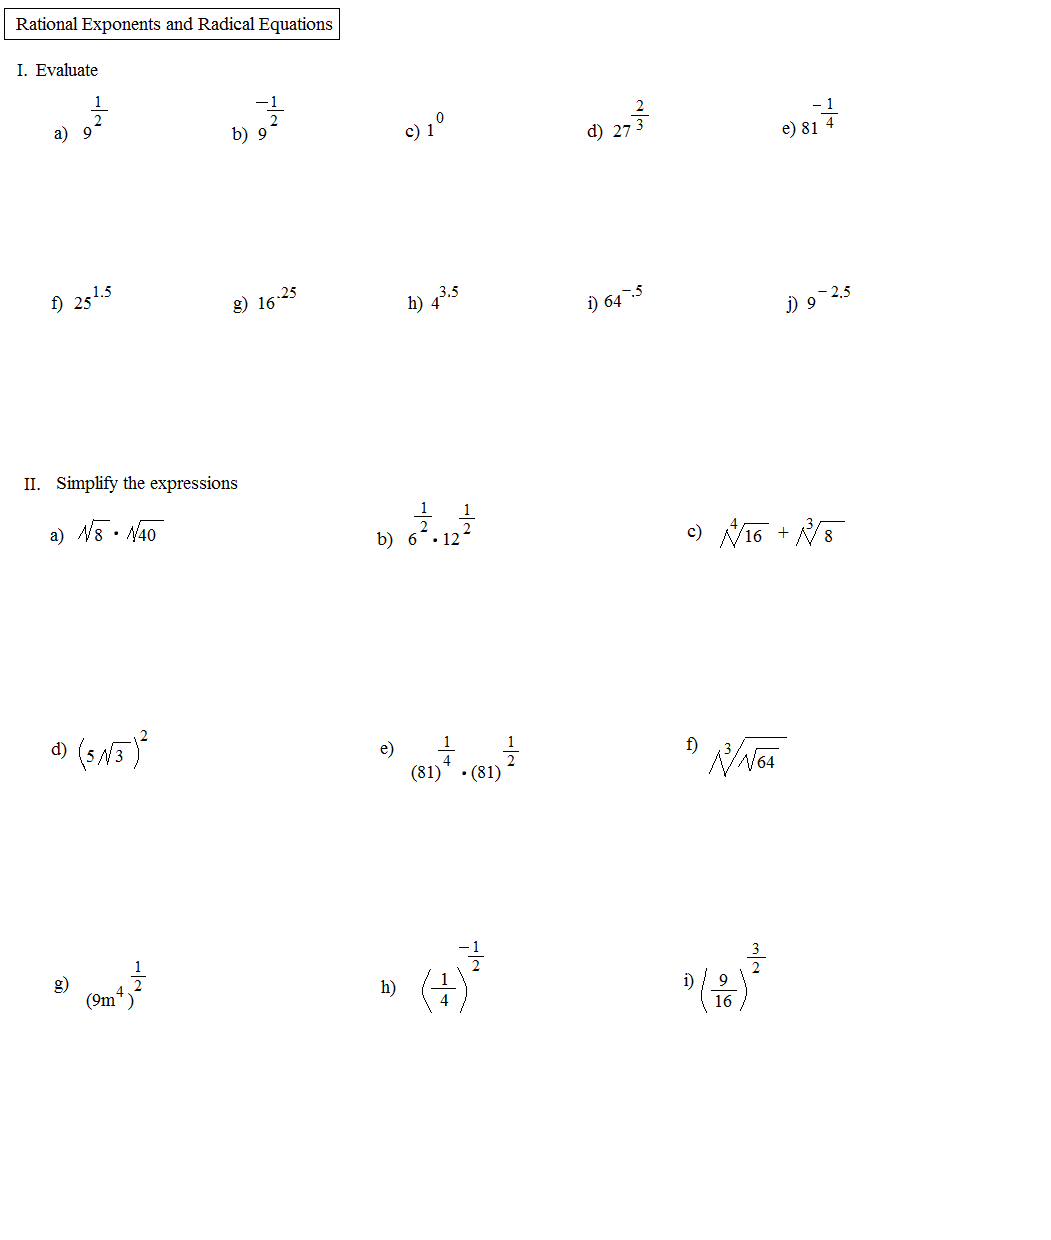 Math Plane Rational Exponents and Radical Equations – Operations with Radical Expressions Worksheet Answers